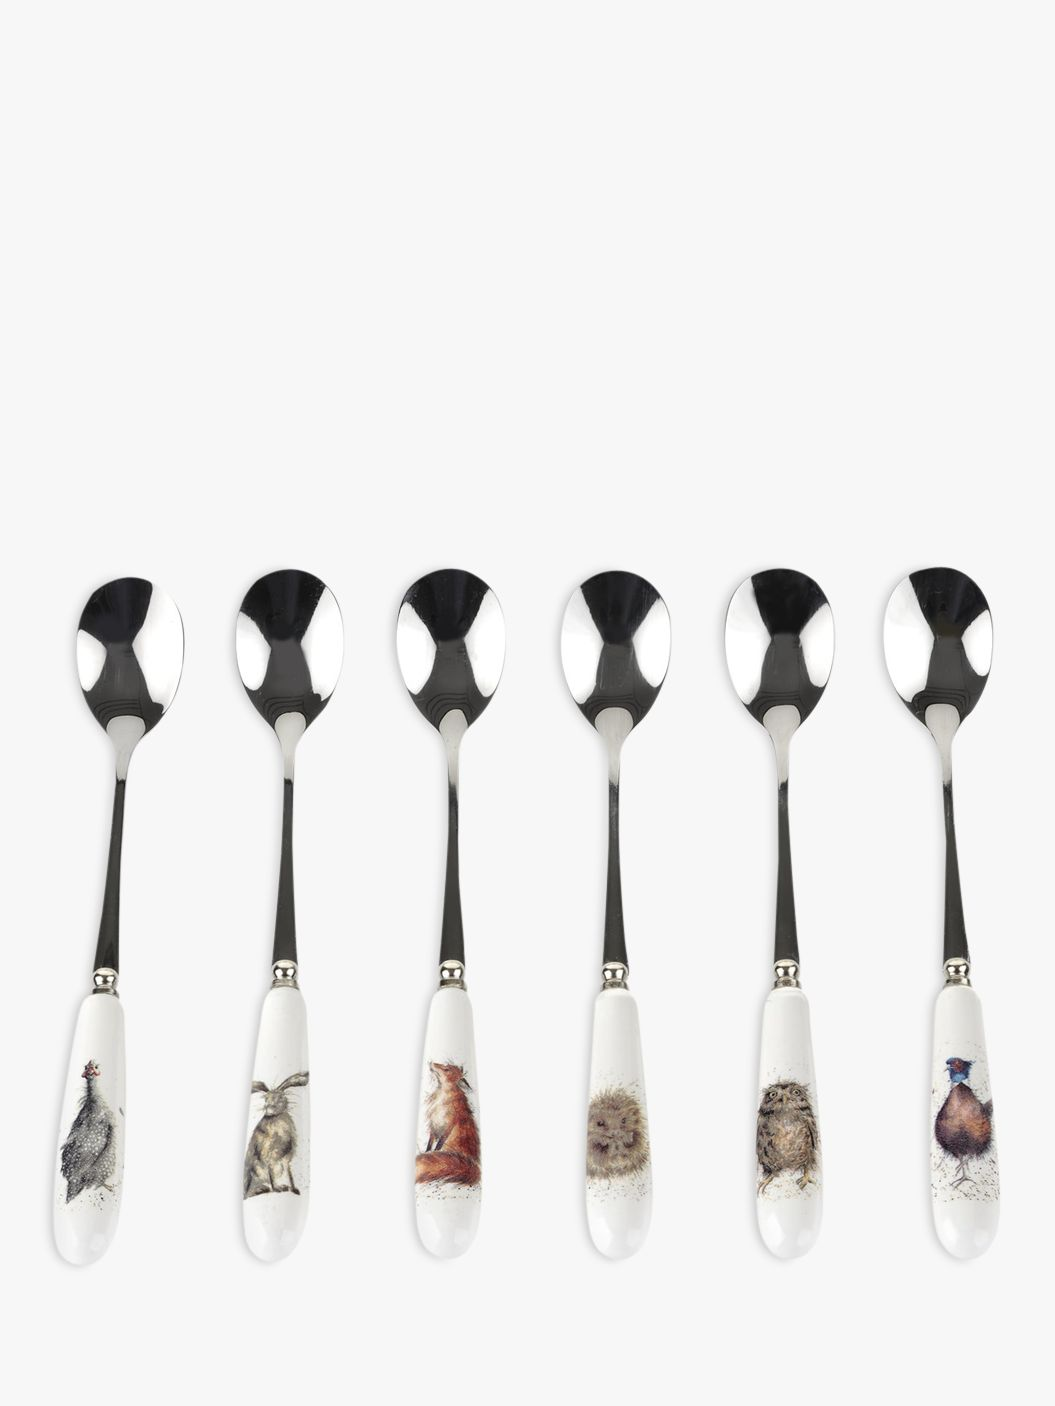 Royal Worcester Royal Worcester Wrendale Teaspoons, Set of 6